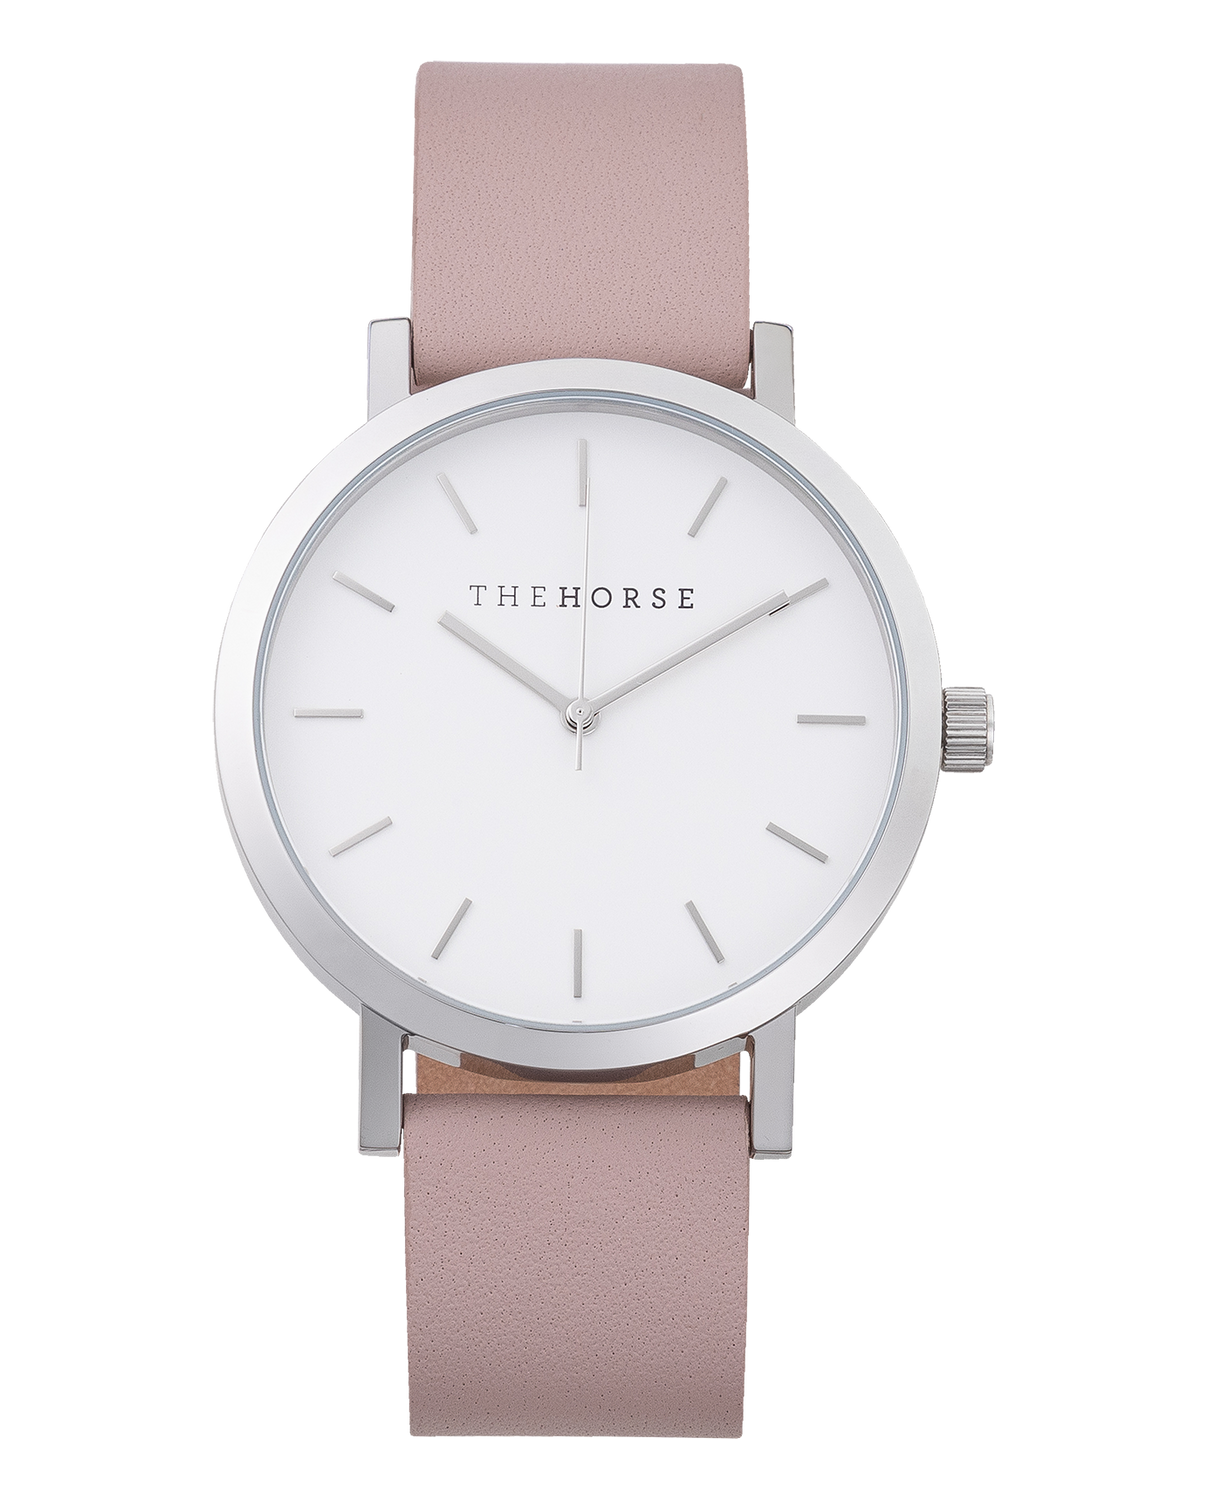 The Horse Original Watch A30- Polished Silver / White Dial / Blush Leather - The Artisan Storeroom